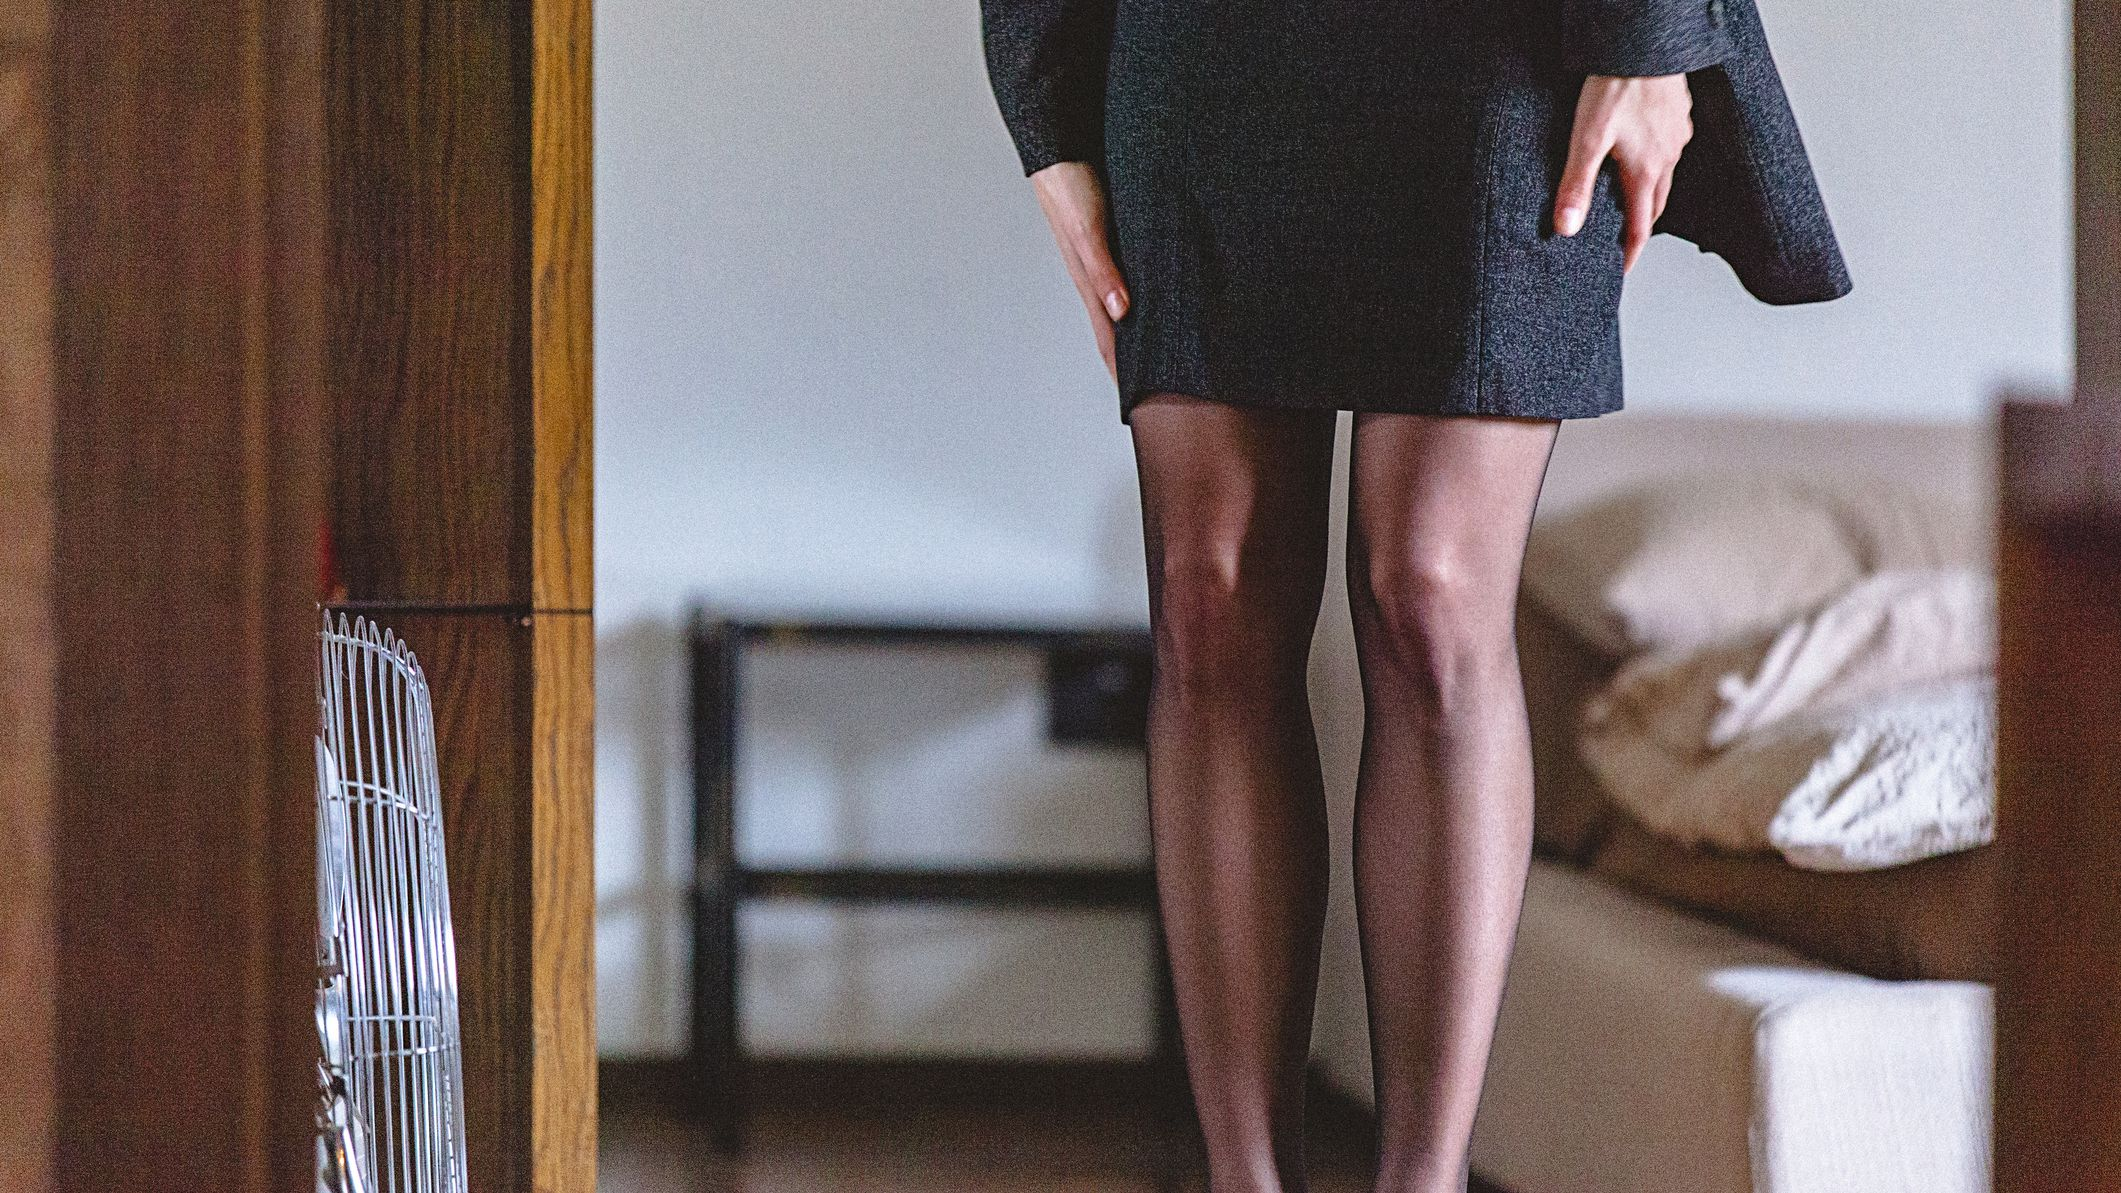 Work You To Pantyhose Wear Interviews Or Should Job rtQhCxsd